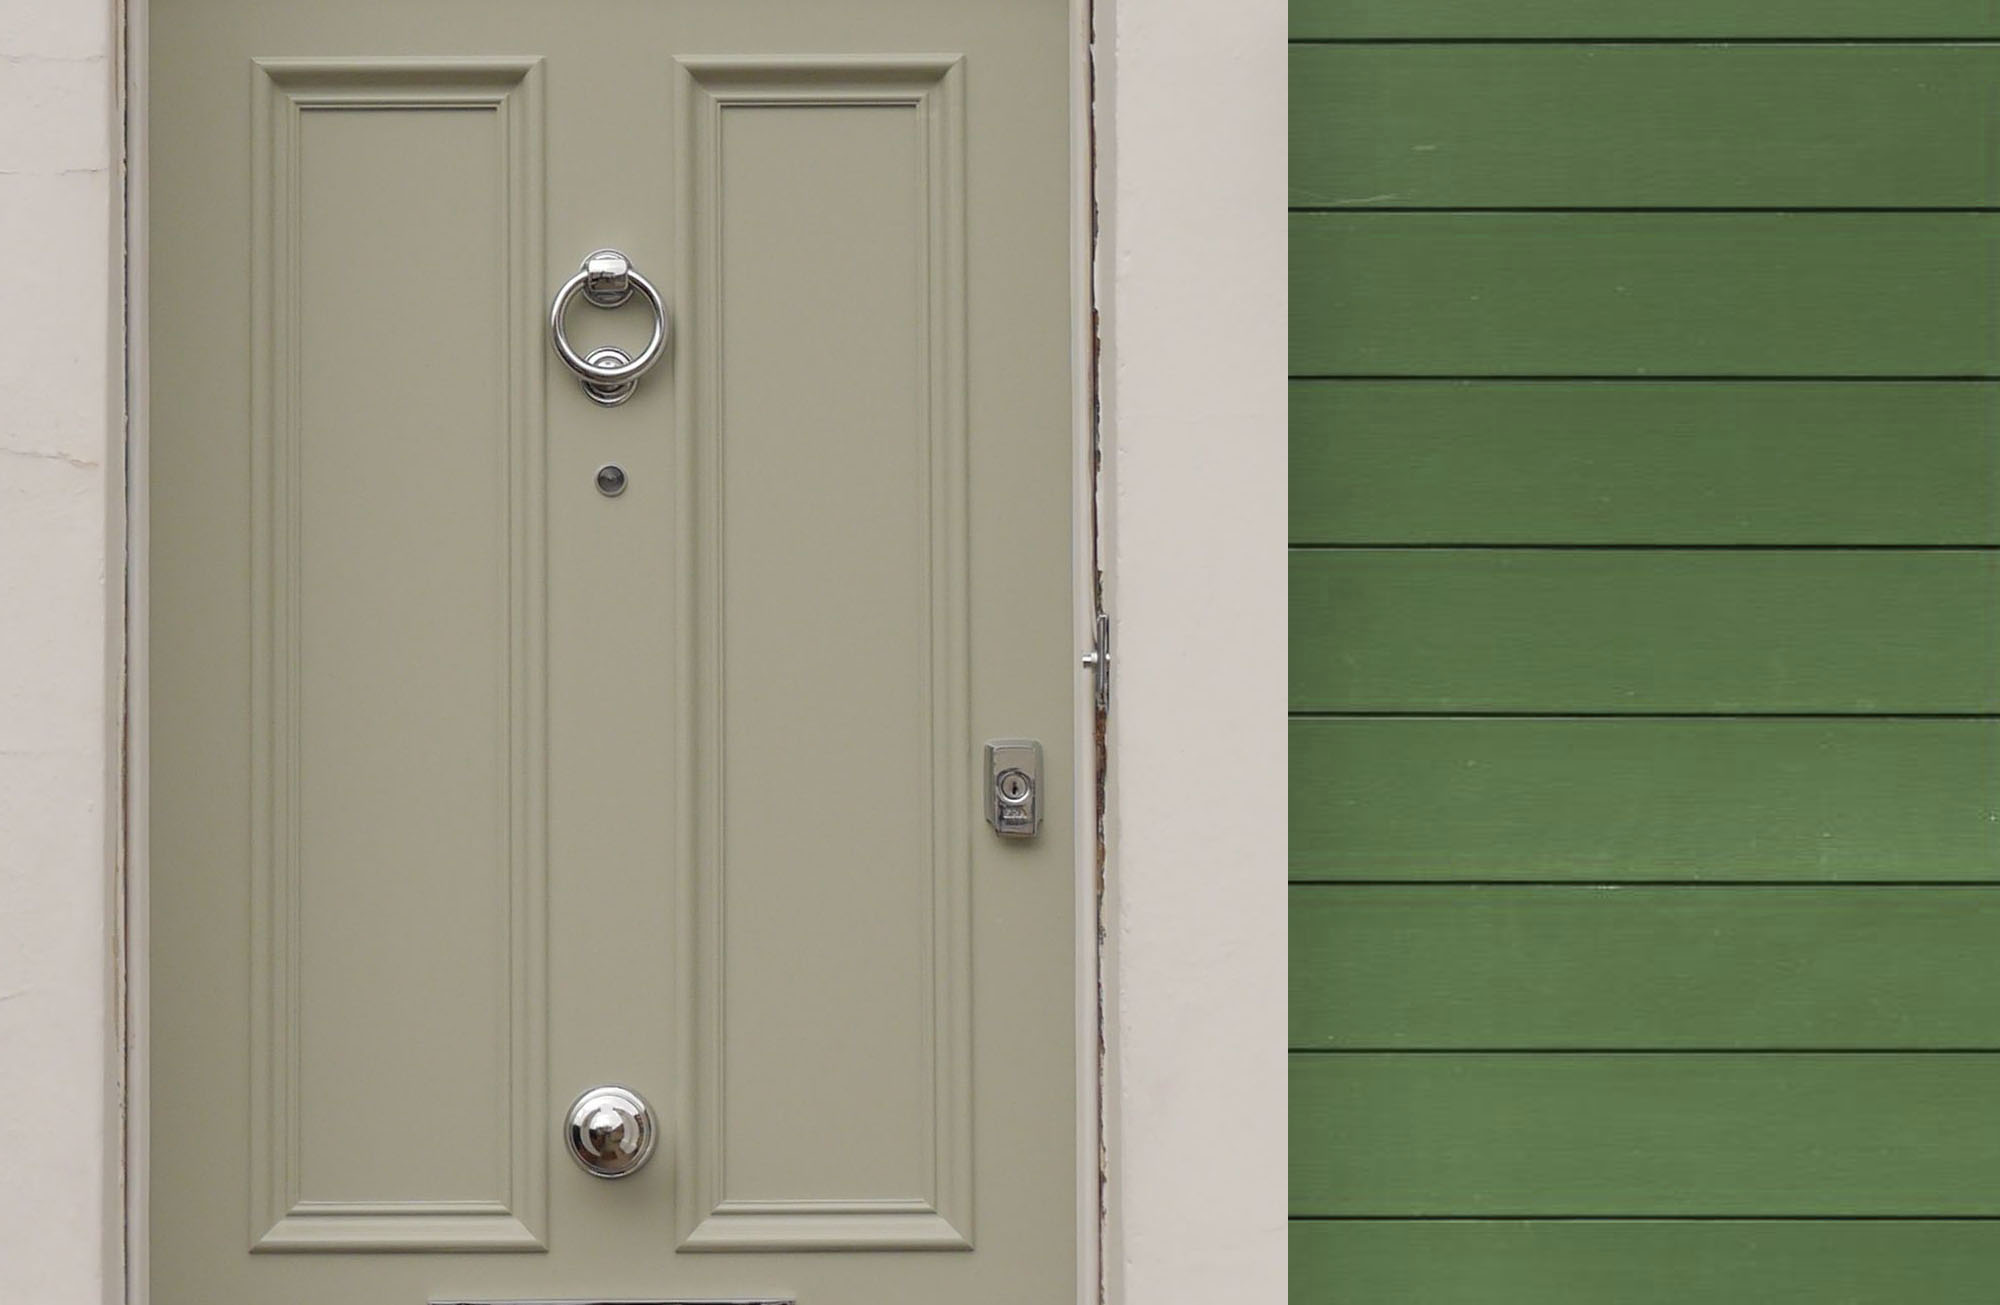 Green lap siding with a white front door and matching white trim.